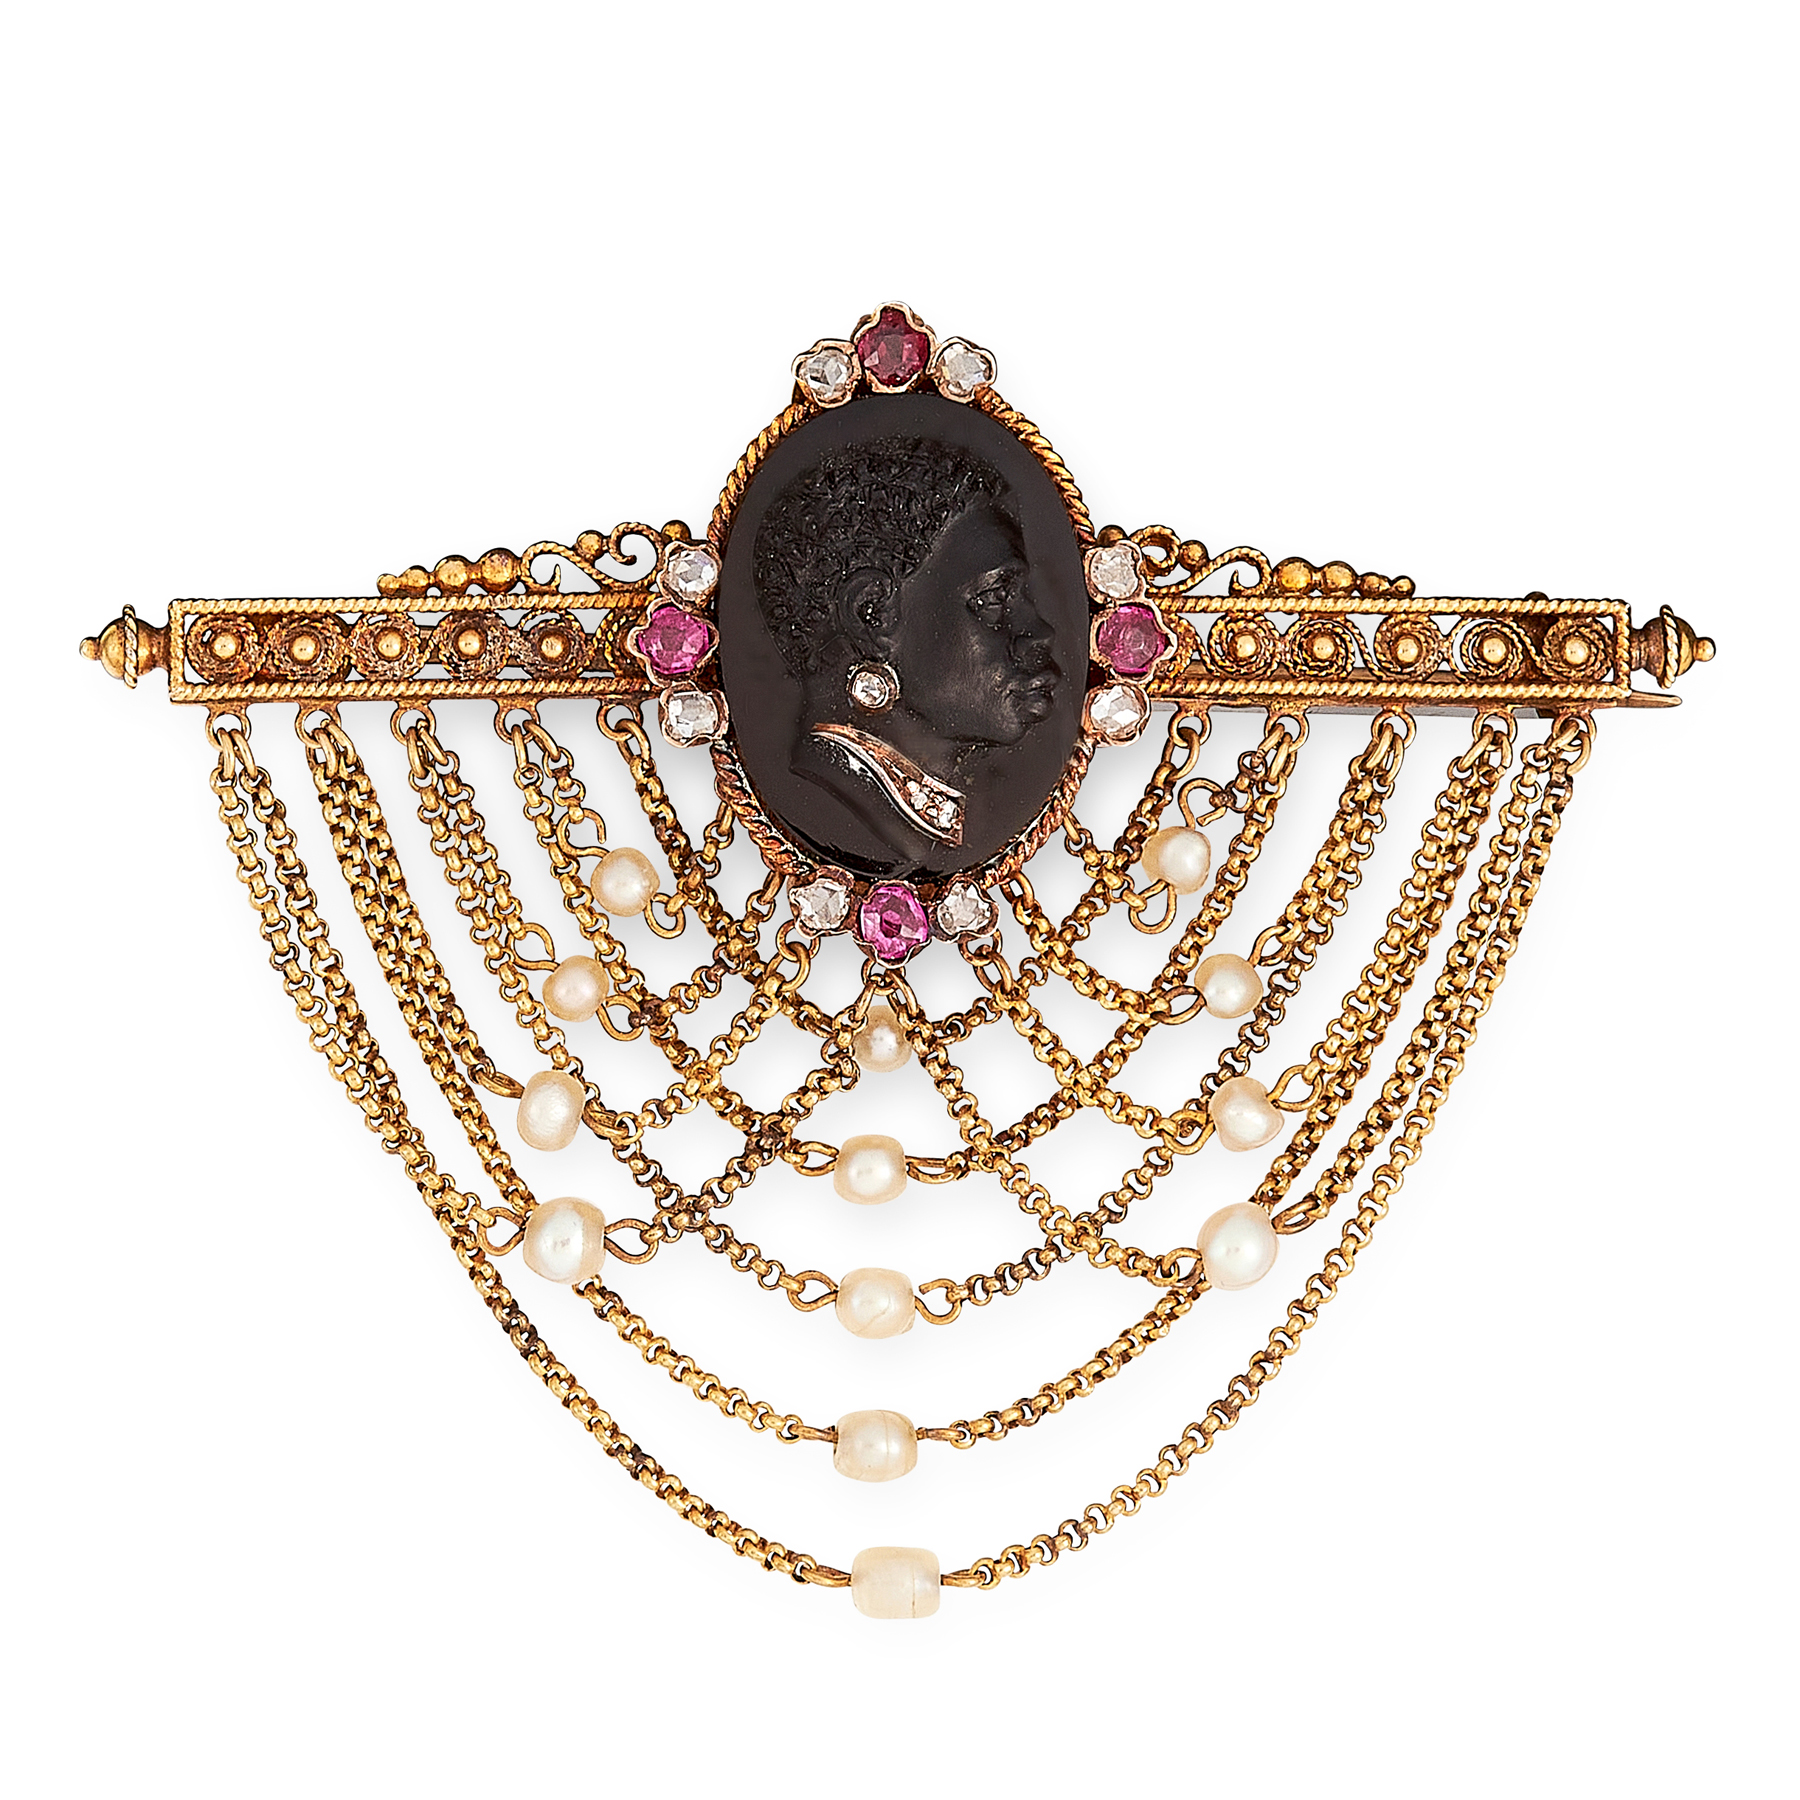 AN ANTIQUE RUBY, DIAMOND AND PEARL BLACKAMOOR CAMEO BROOCH in yellow gold, set with an oval carved